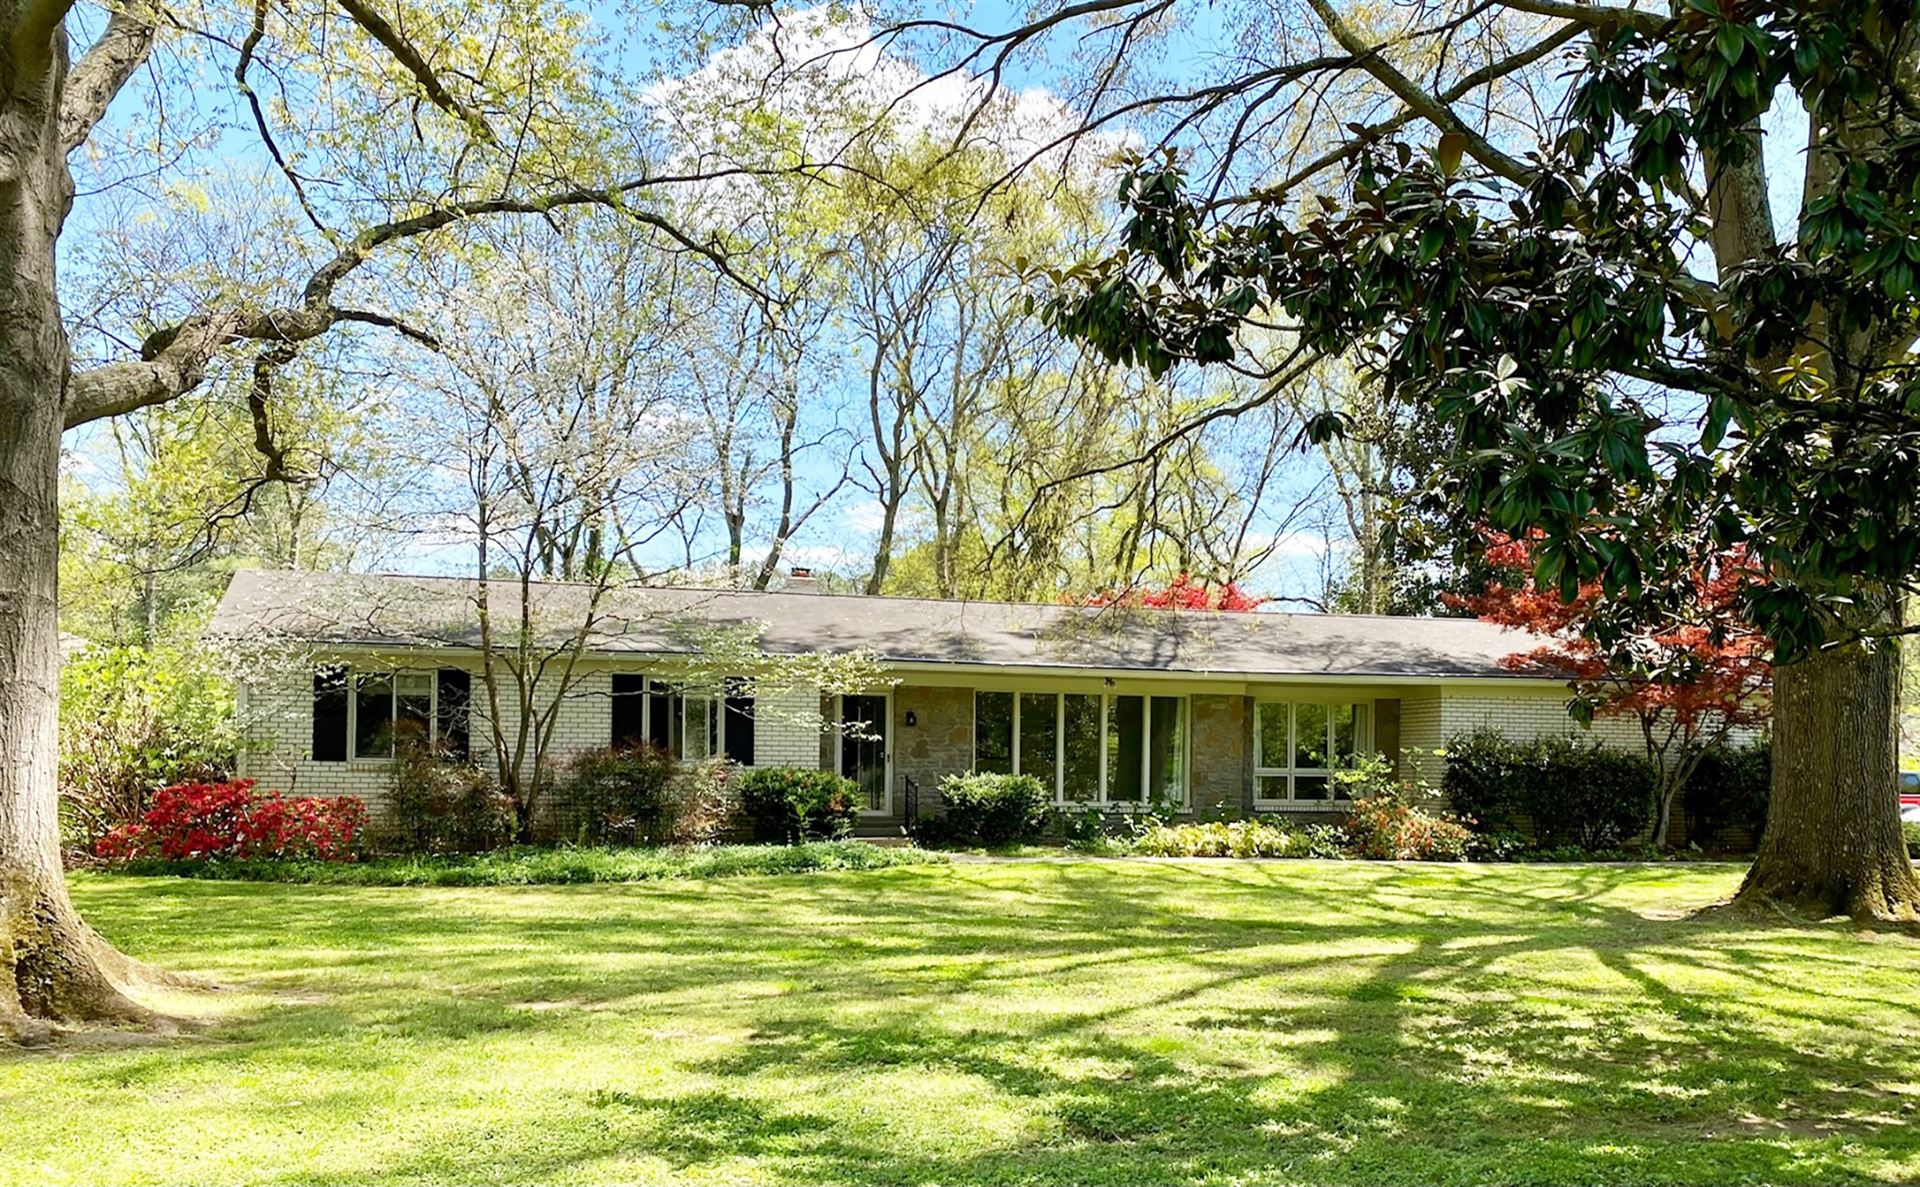 1900 Rosewood Valley Dr, Brentwood, TN 37027 - MLS#: 2274561